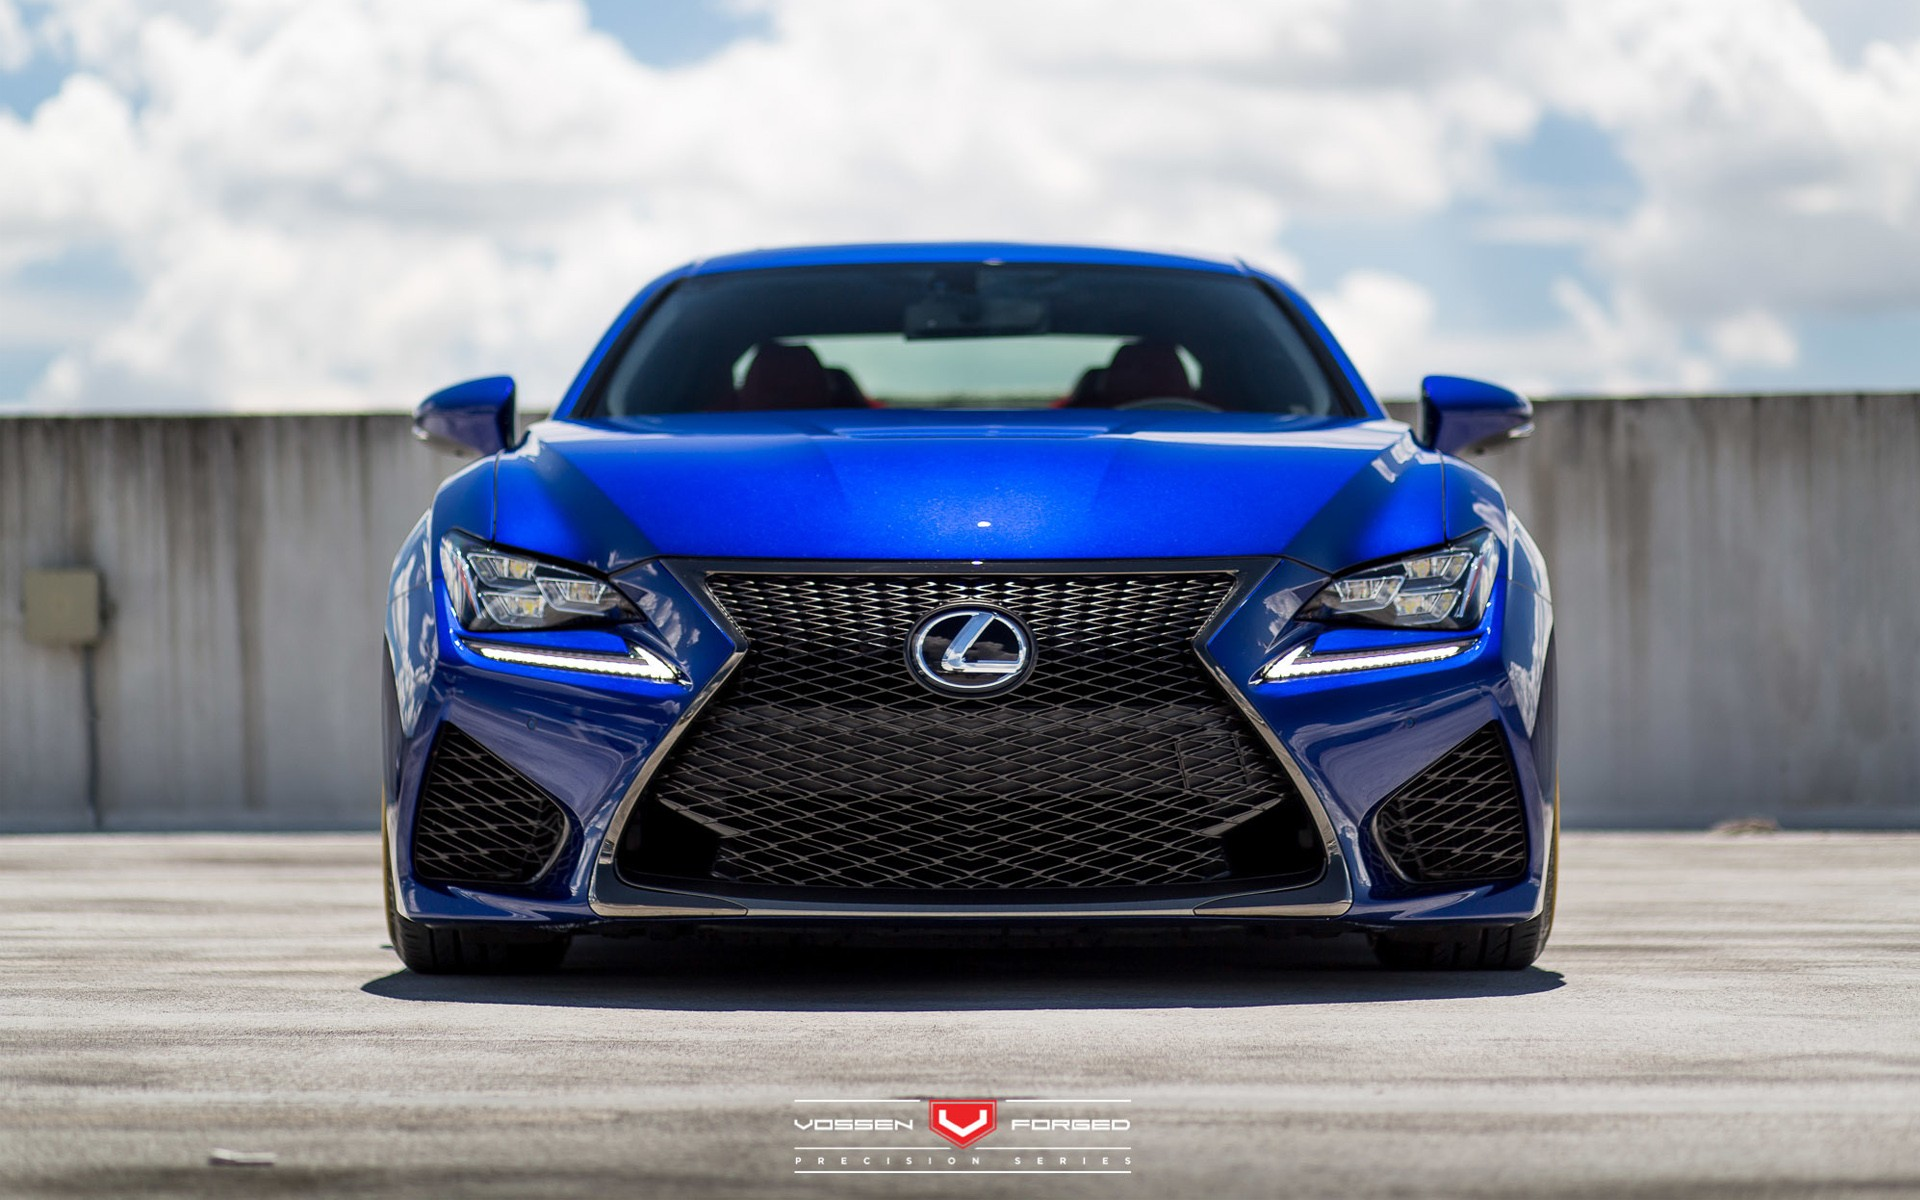 2015 Lexus RC F Sport Wallpaper | HD Car Wallpapers | ID #5847